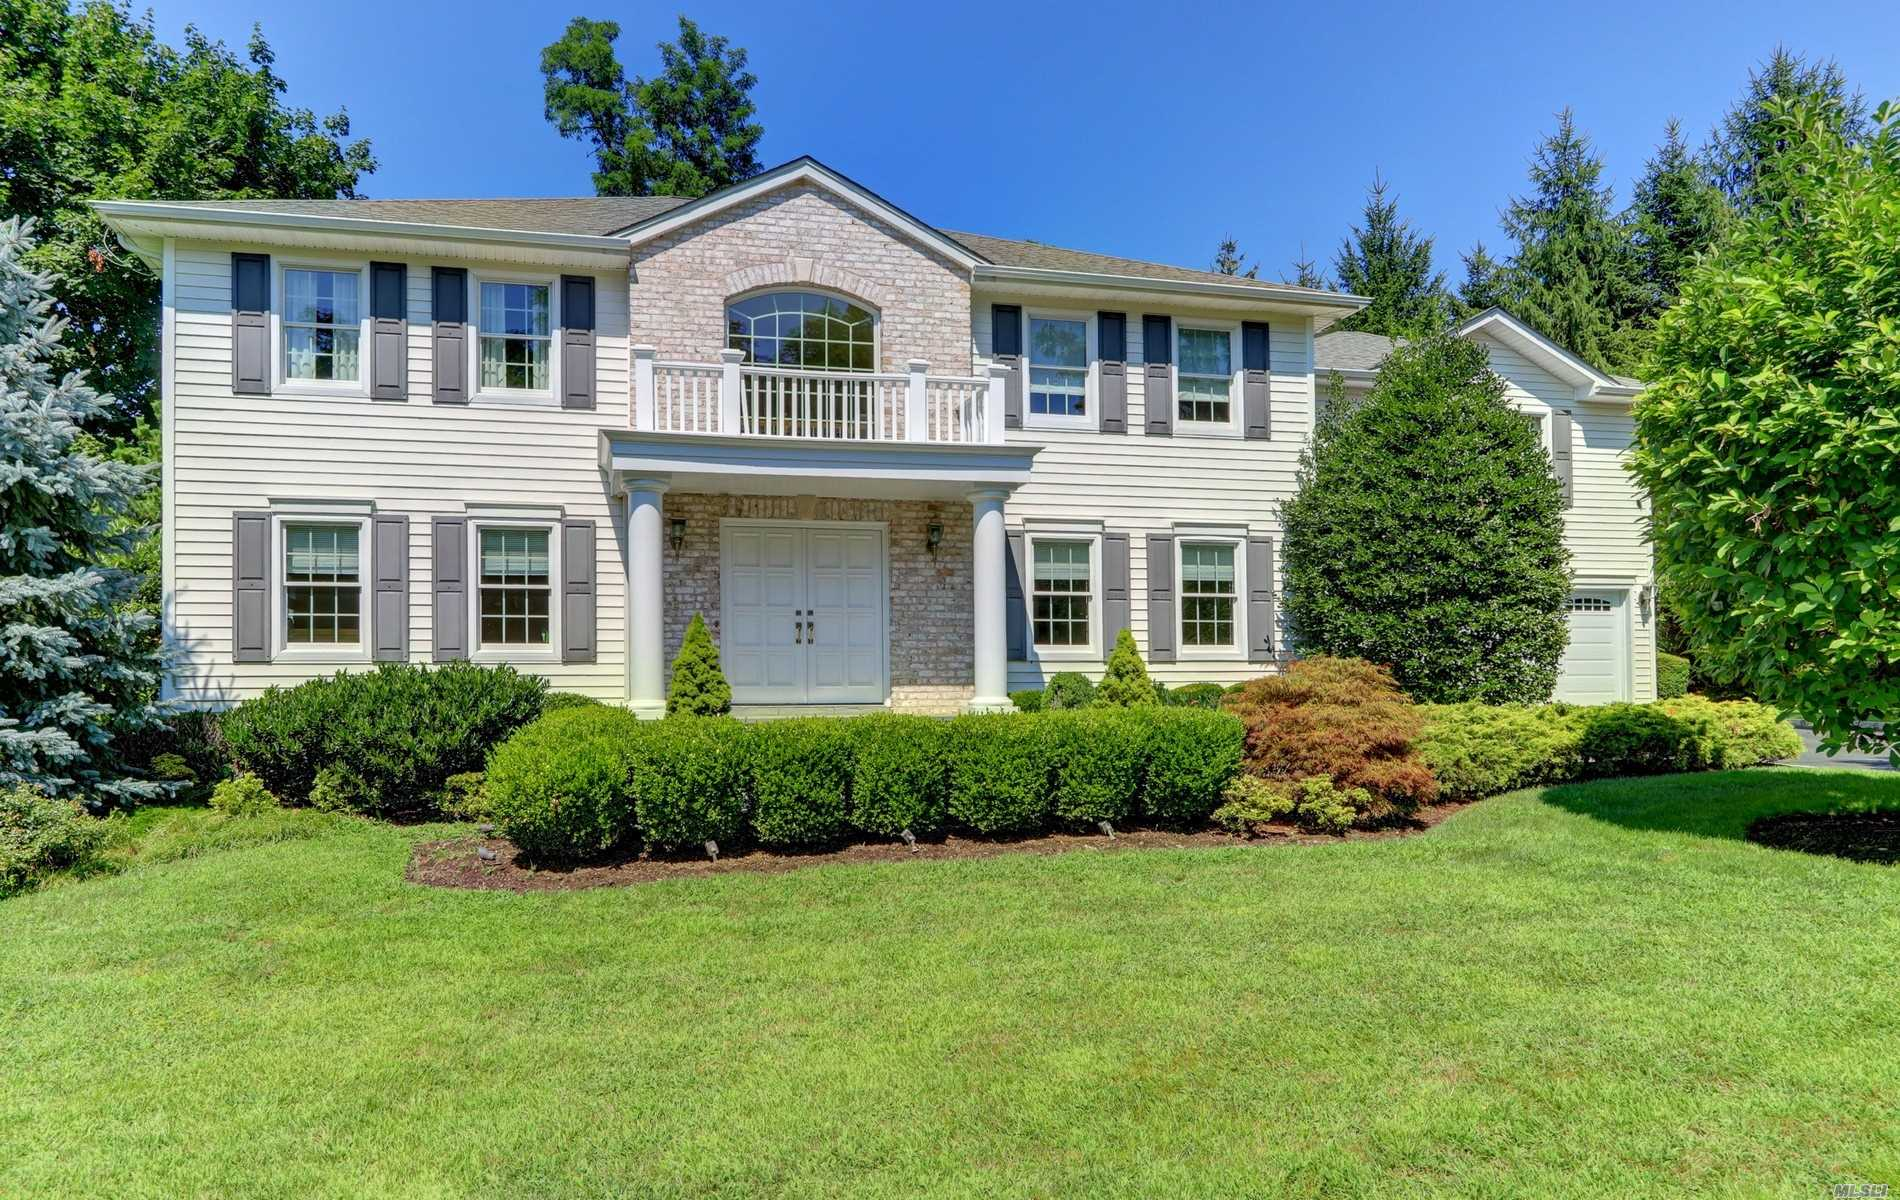 Sophistication & elegance's describes this mint colonial located in the prestigious Red Spring Manor area of Glen Cove. The home features a 2 story entry, formal living room & dinning room, fabulous kitchen/family room, leading to a beautiful private yard w/ saltwater pool and outdoor kitchen. An impressive master bedroom w/spa like bath, 3 add. bedrooms & bath plus, separate upstairs suit complete w/sitting area and private bath. This home is a true gem!!!!